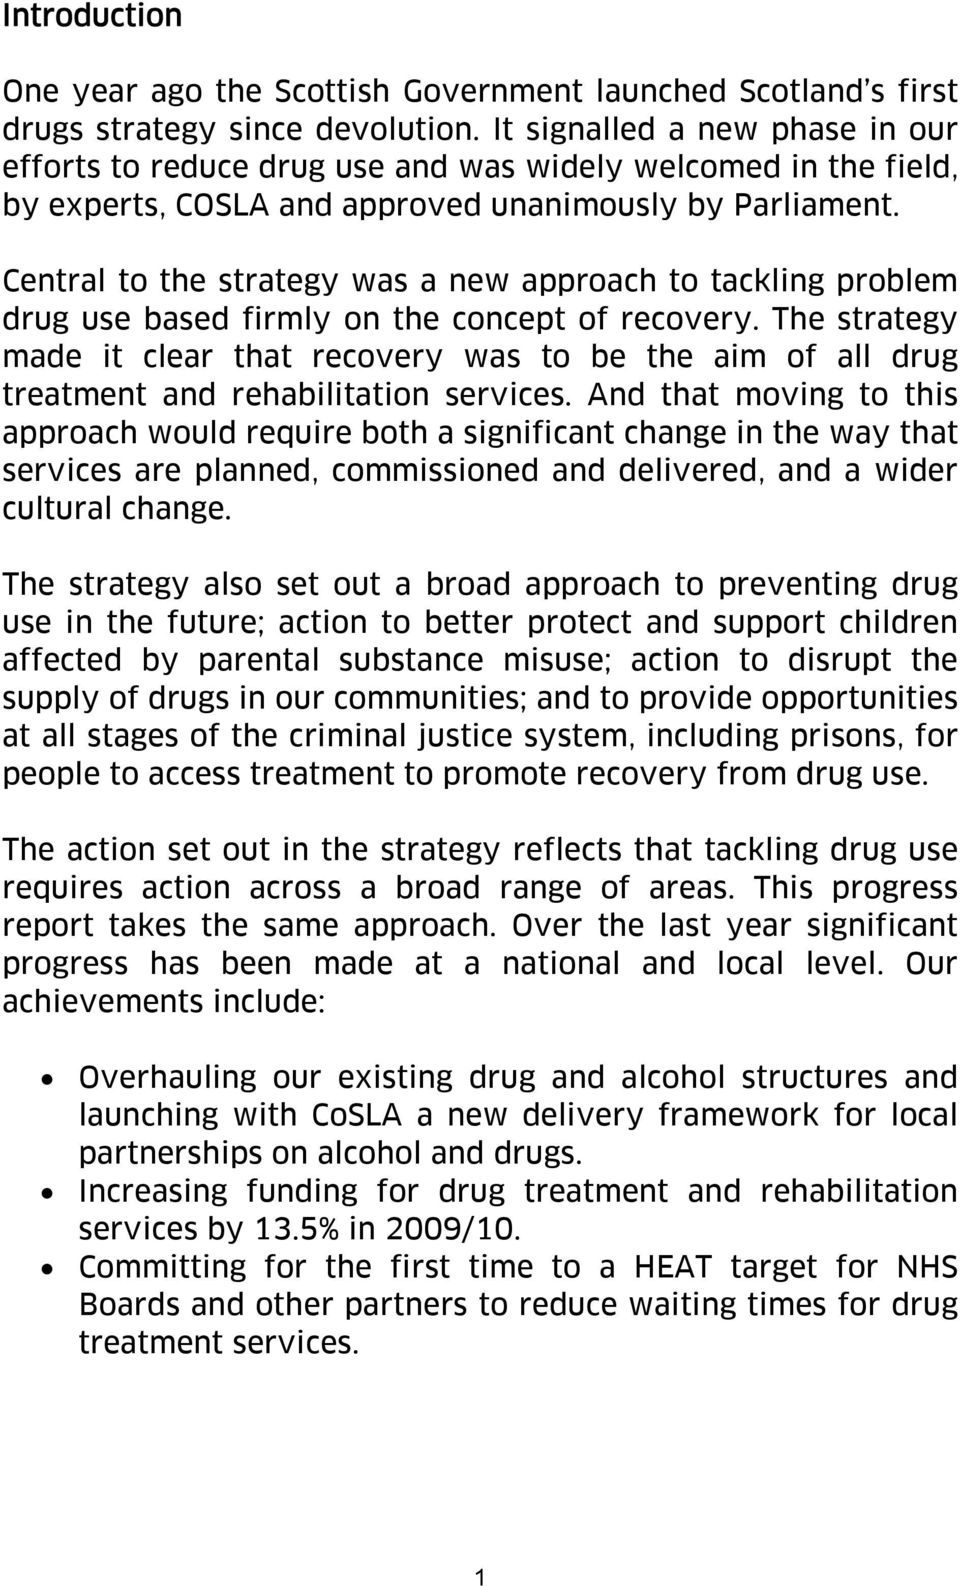 Central to the strategy was a new approach to tackling problem drug use based firmly on the concept of recovery.